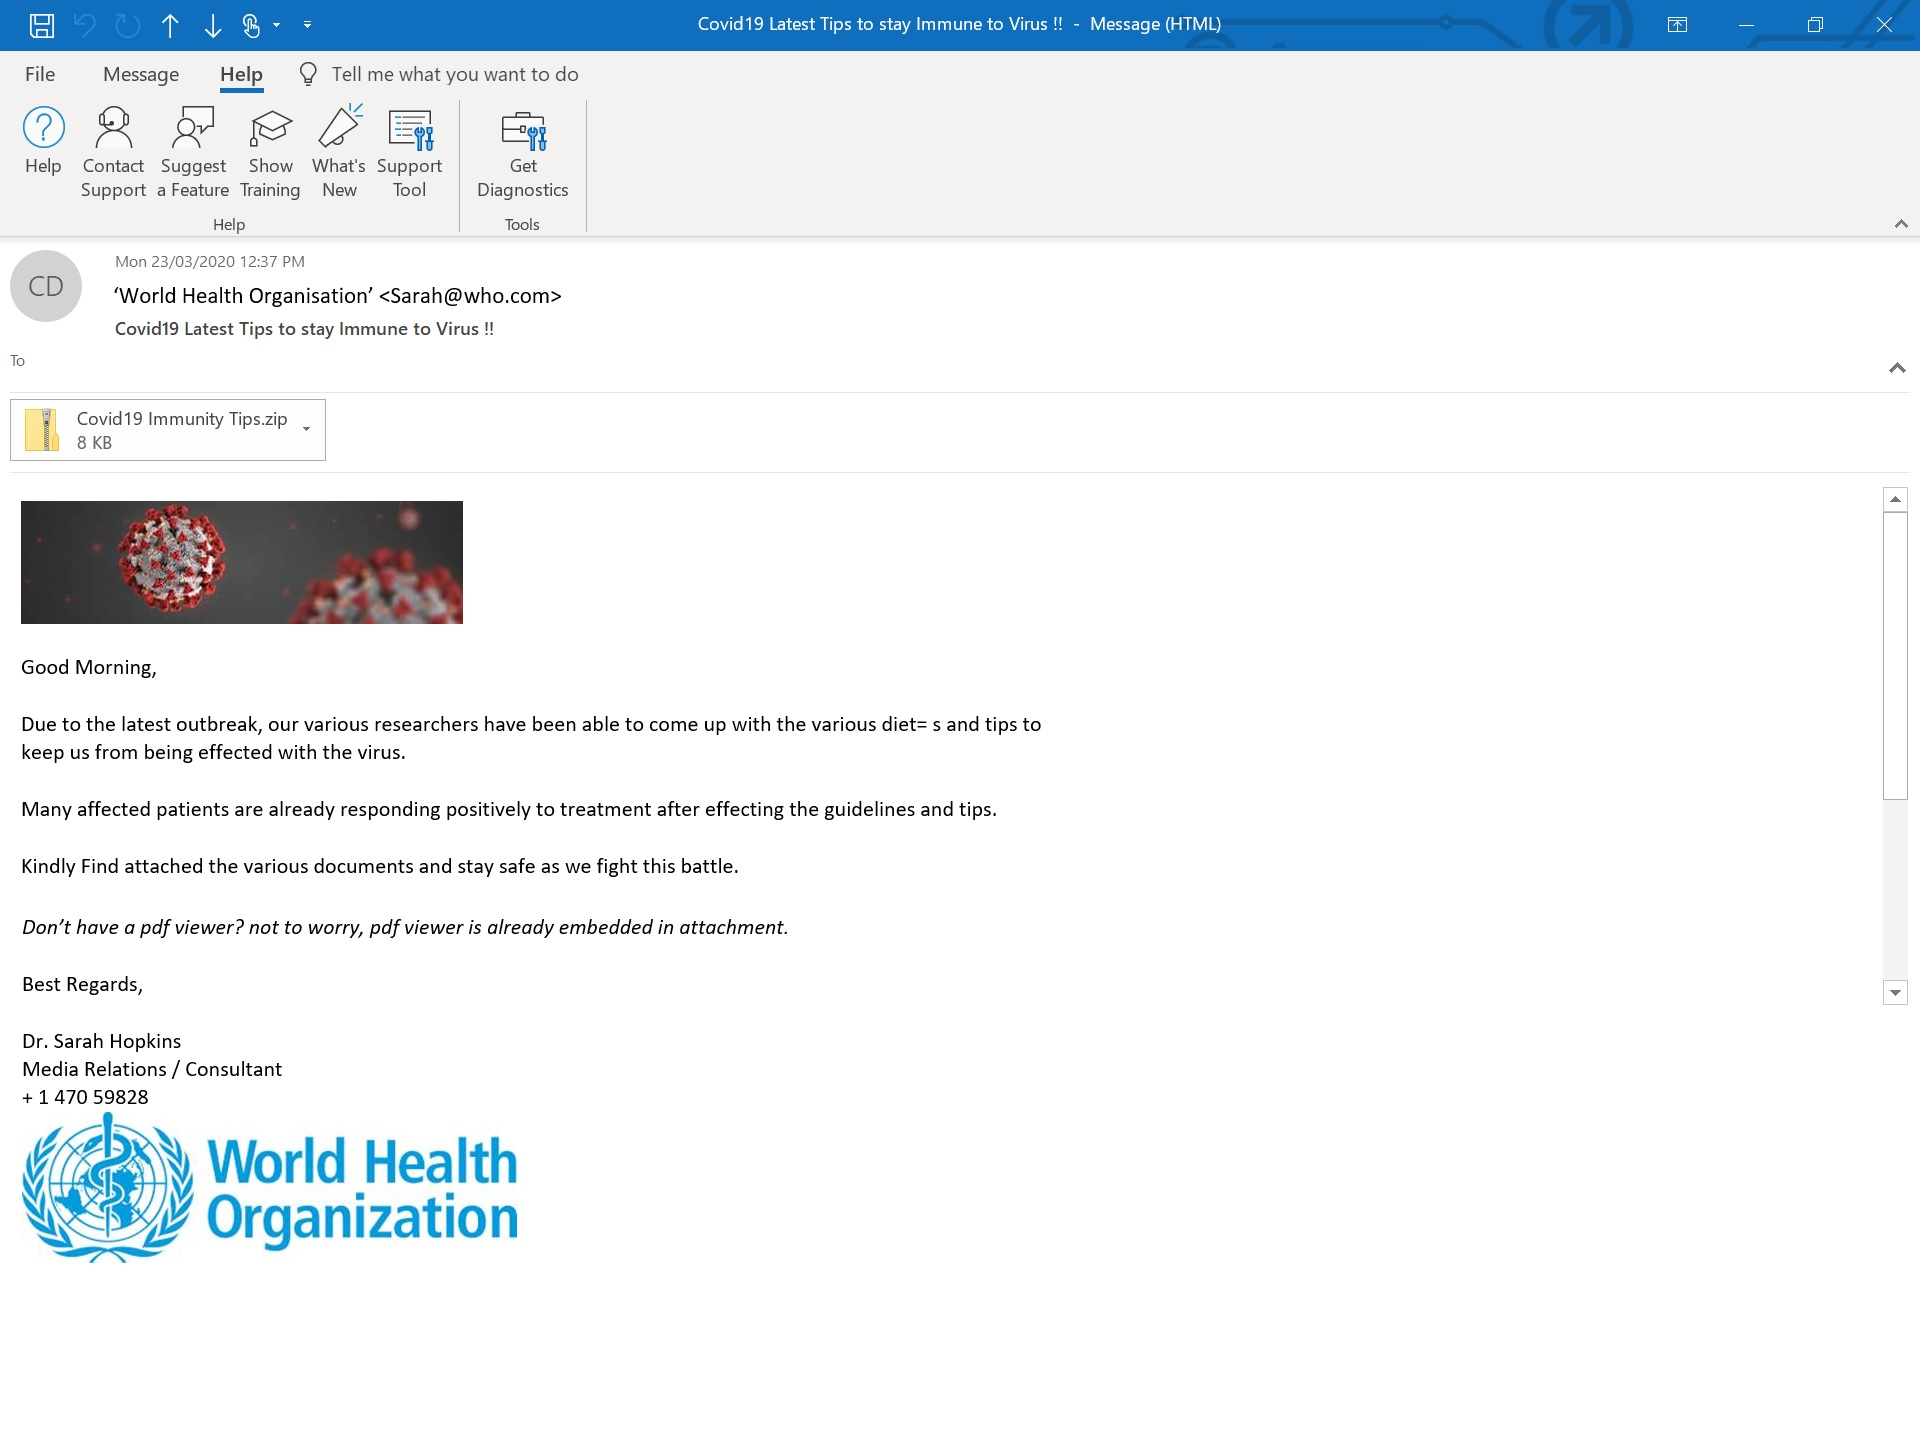 An example of the type of malicious email scam related to COVID-19